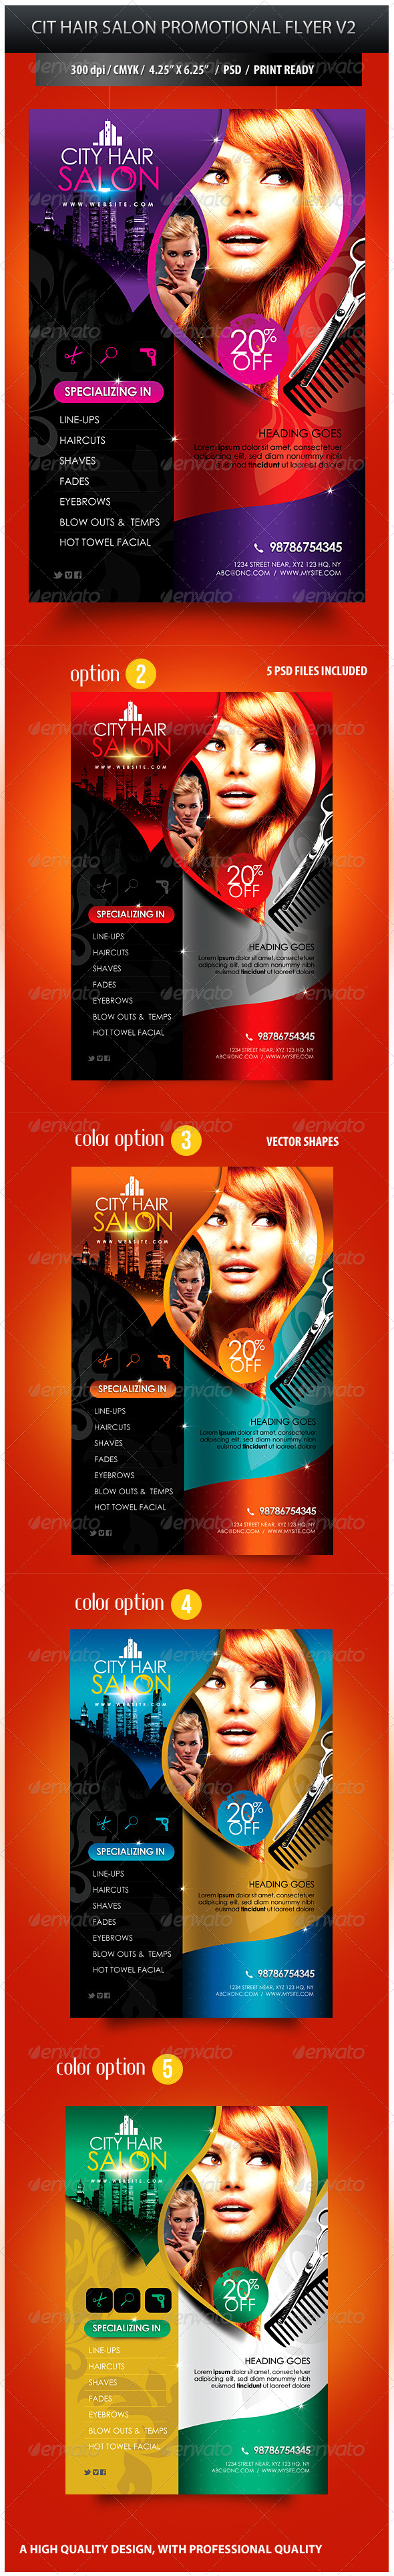 City Hair Salon Promotional Flyer V2 - Commerce Flyers